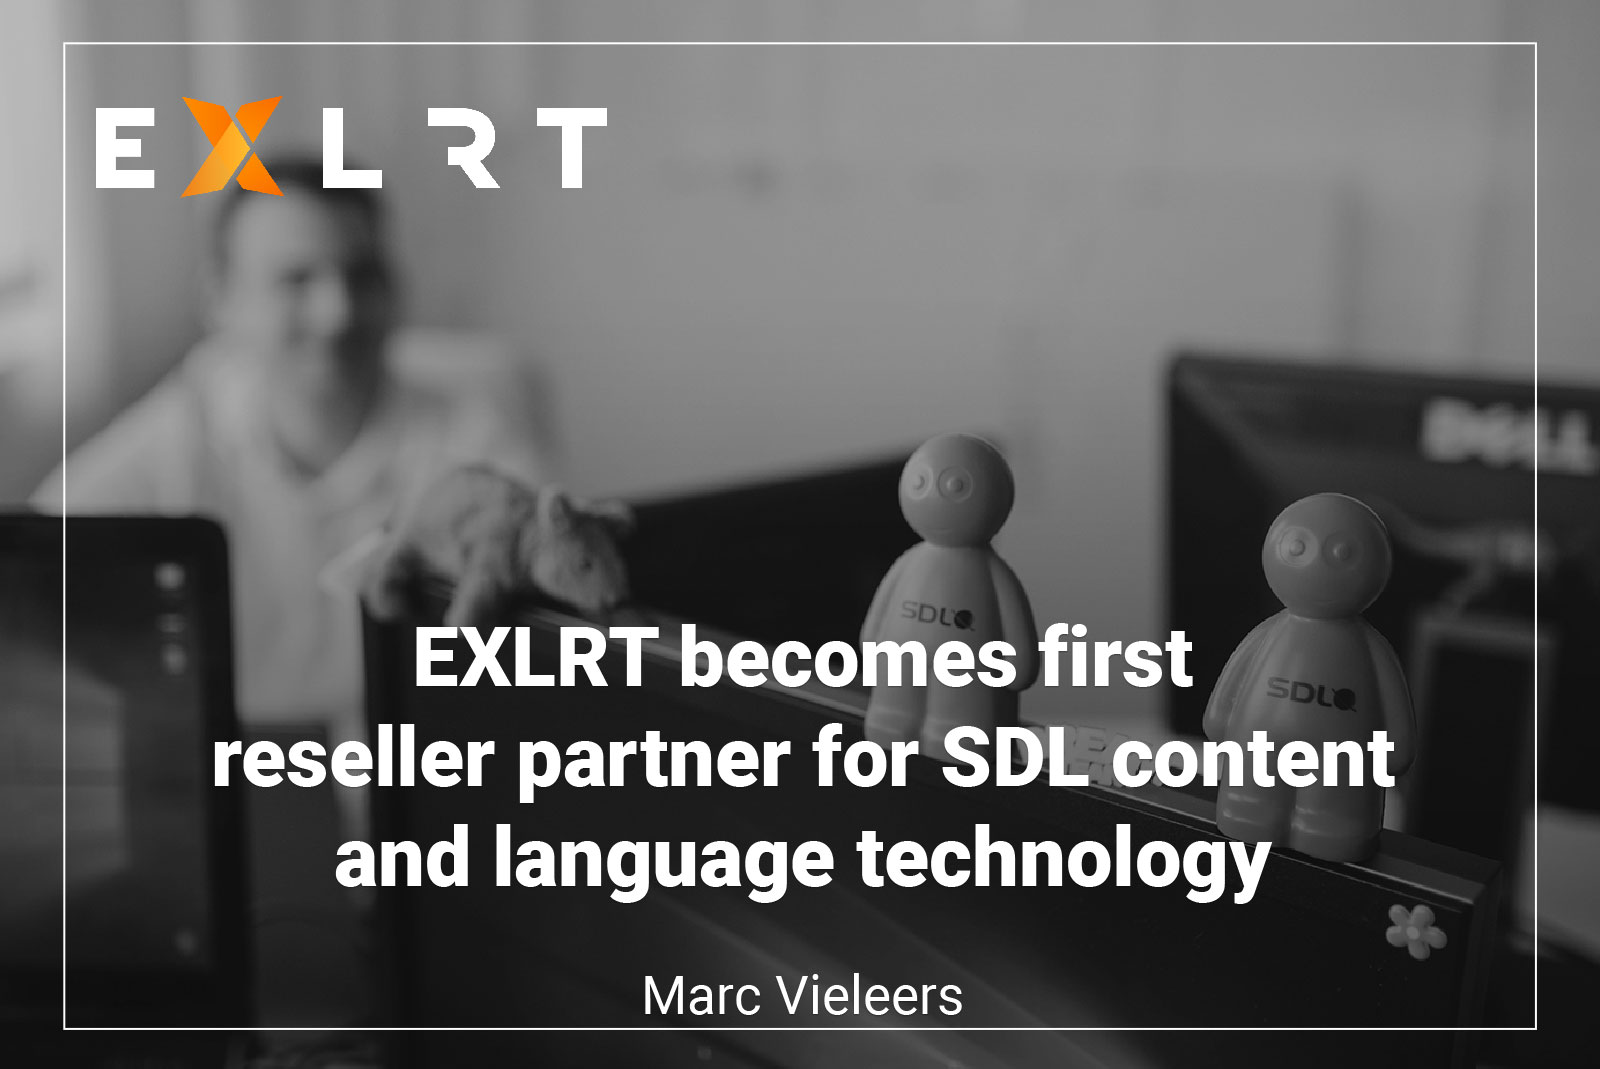 EXLRT becomes first reseller partner for SDL content and language technology